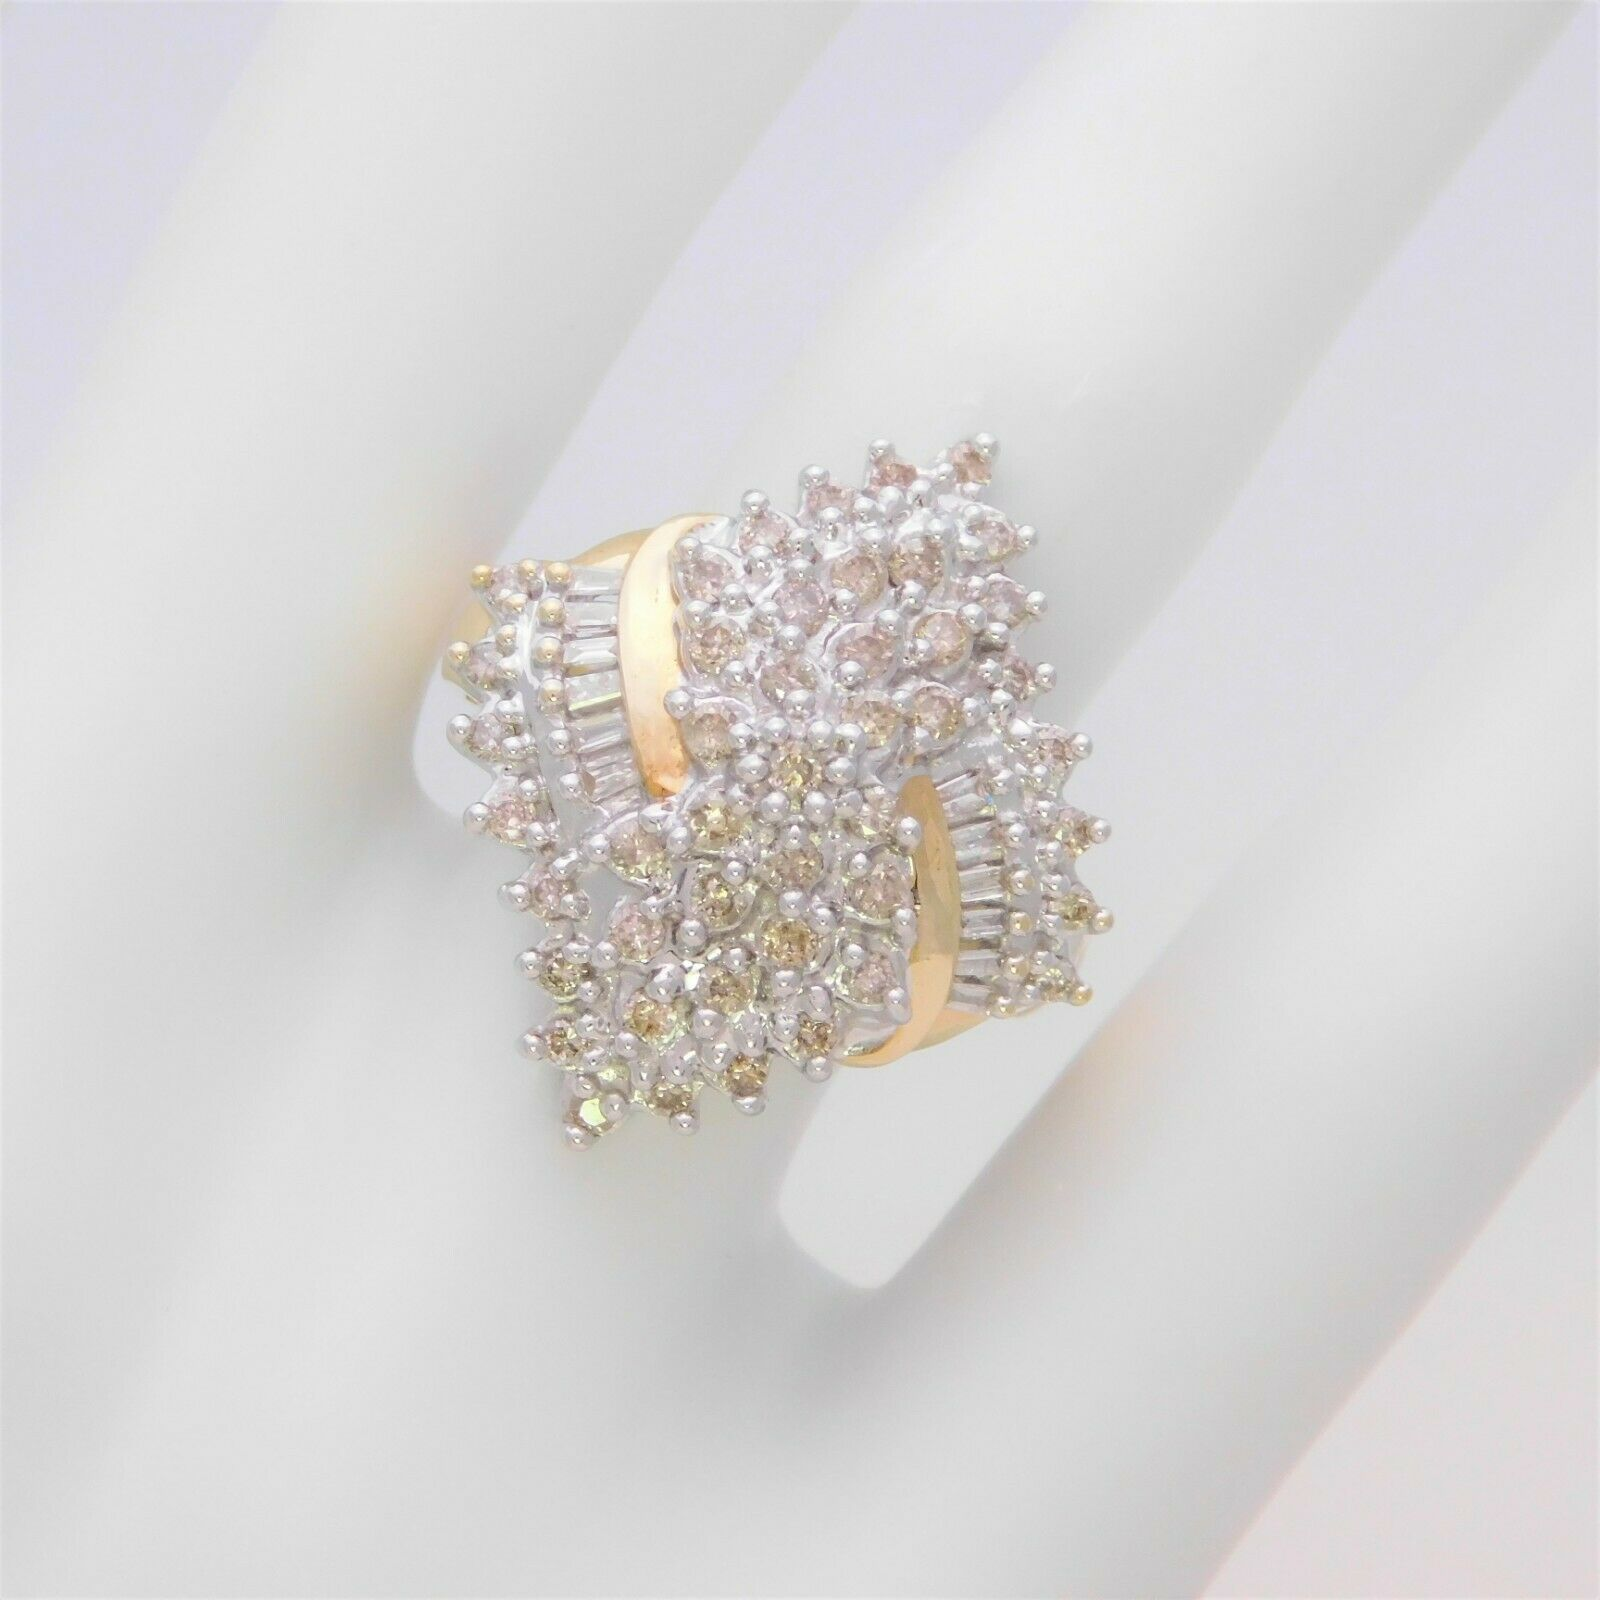 526ab9934 Vintage Round and Cluster Ring Diamond Baguette ntupqe2895-Rings ...